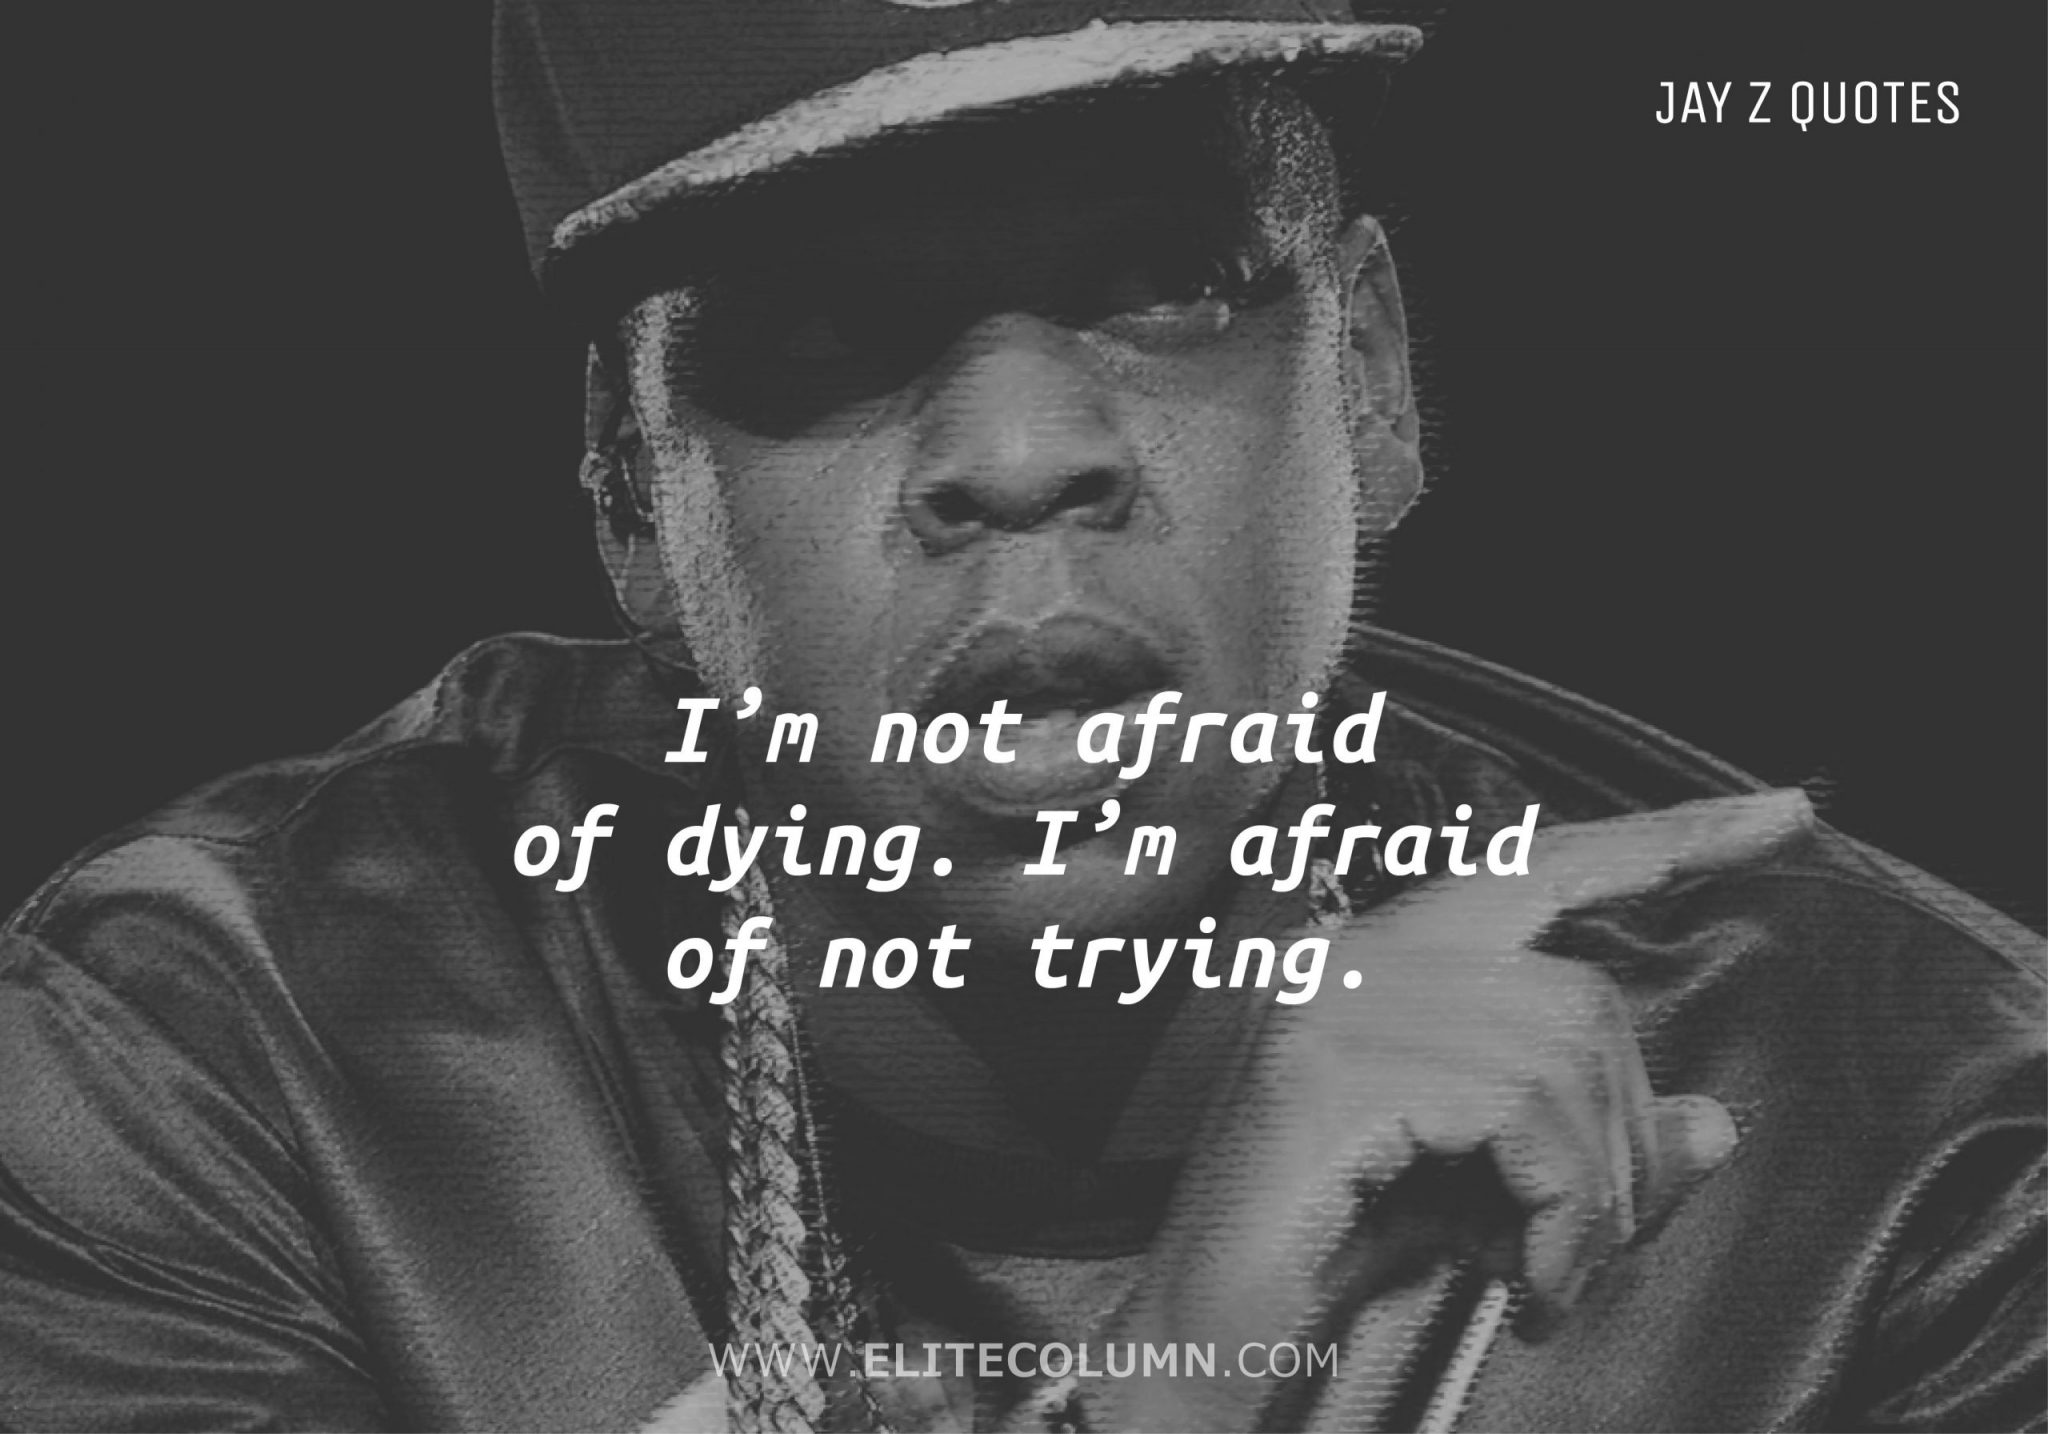 Jay Z Quotes (12)